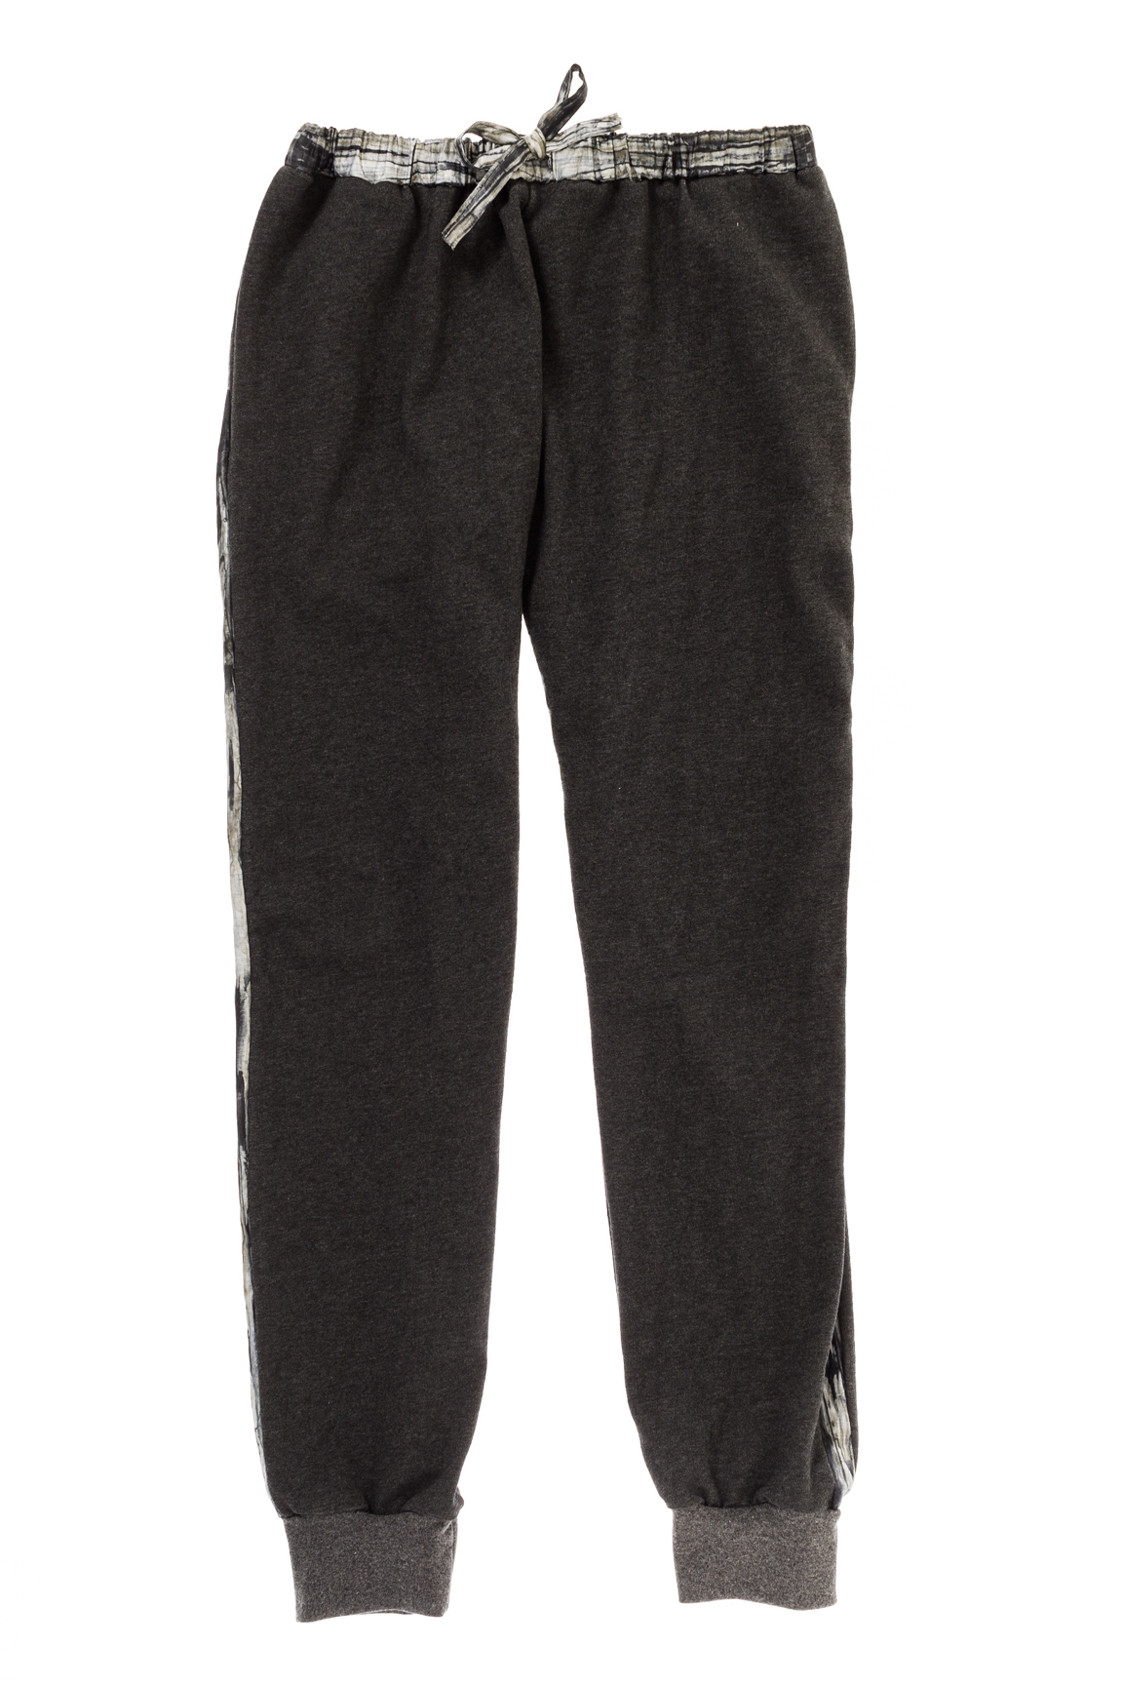 Unique Jogging Pants In Black For Men NOIR  Lyst